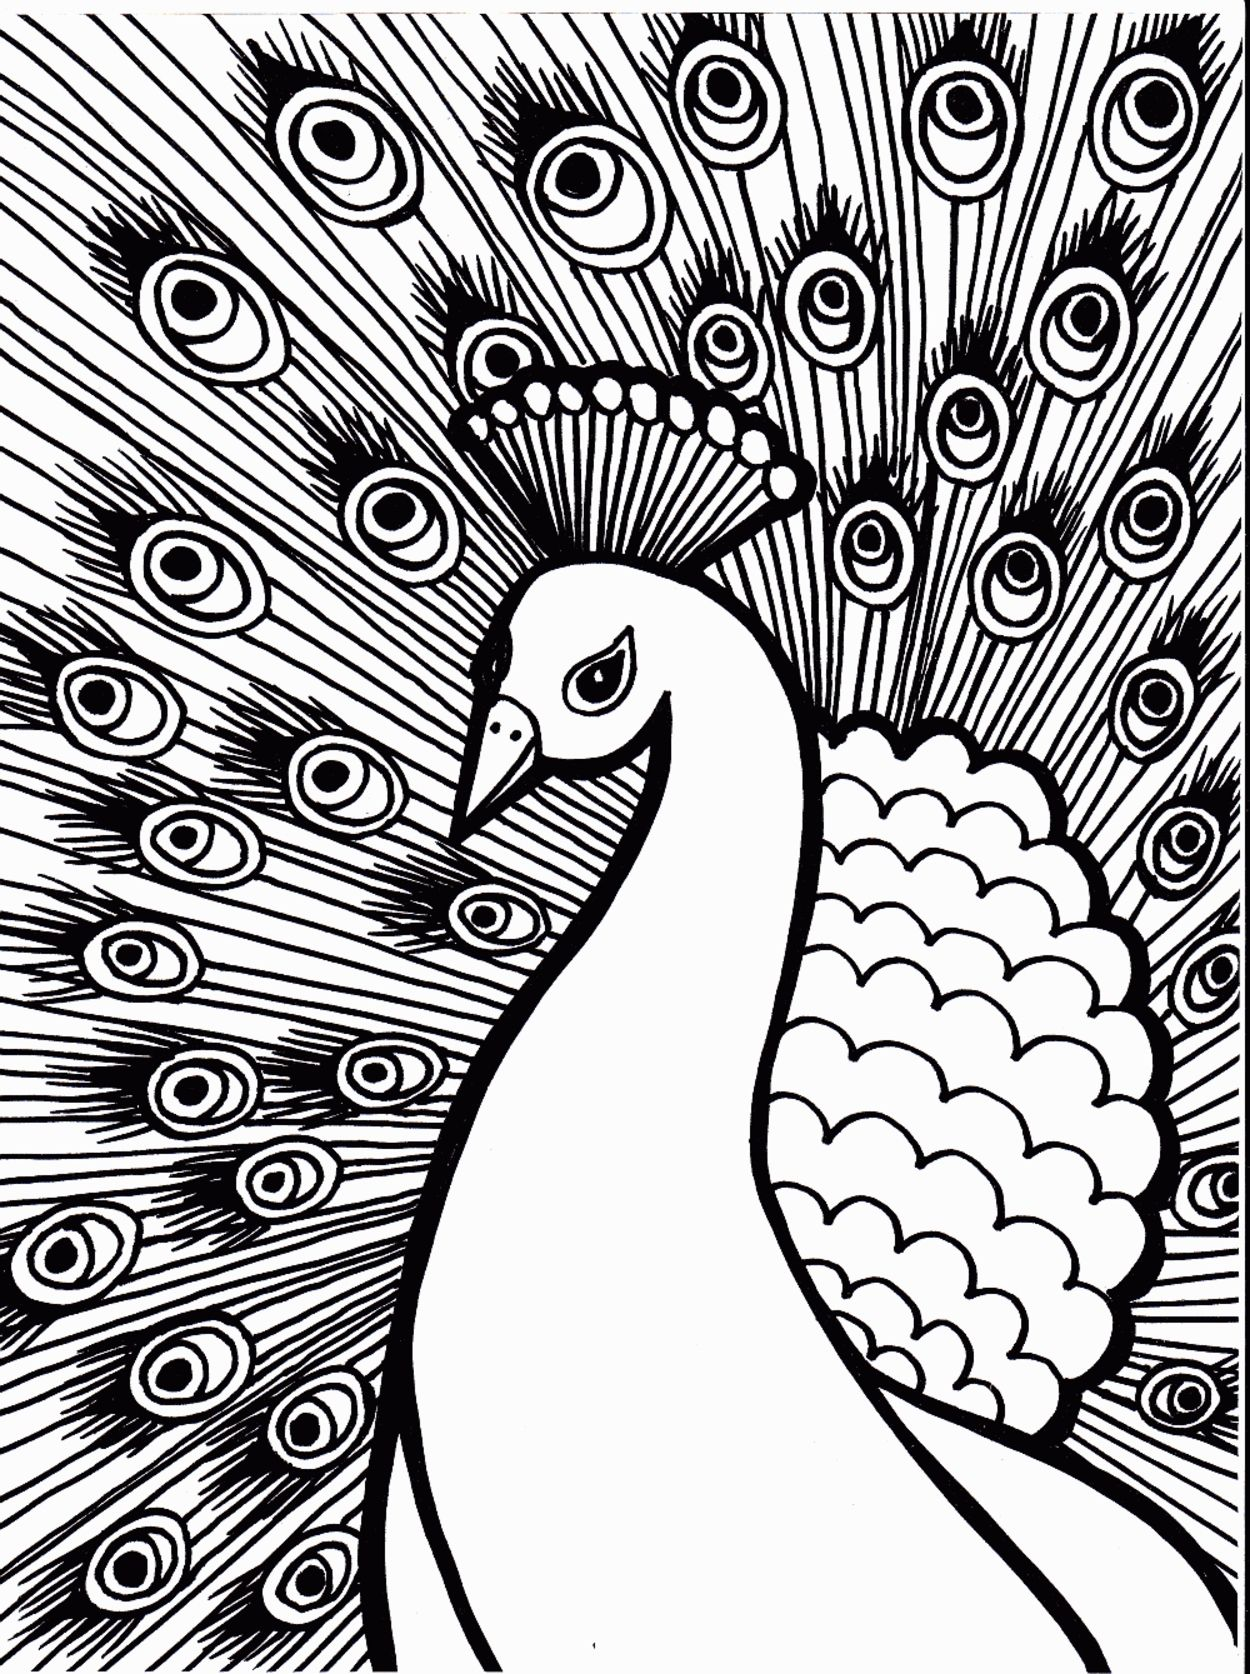 26 Coloring Pages Baby Birds | Coloring Pages | Pinterest | Bird ...